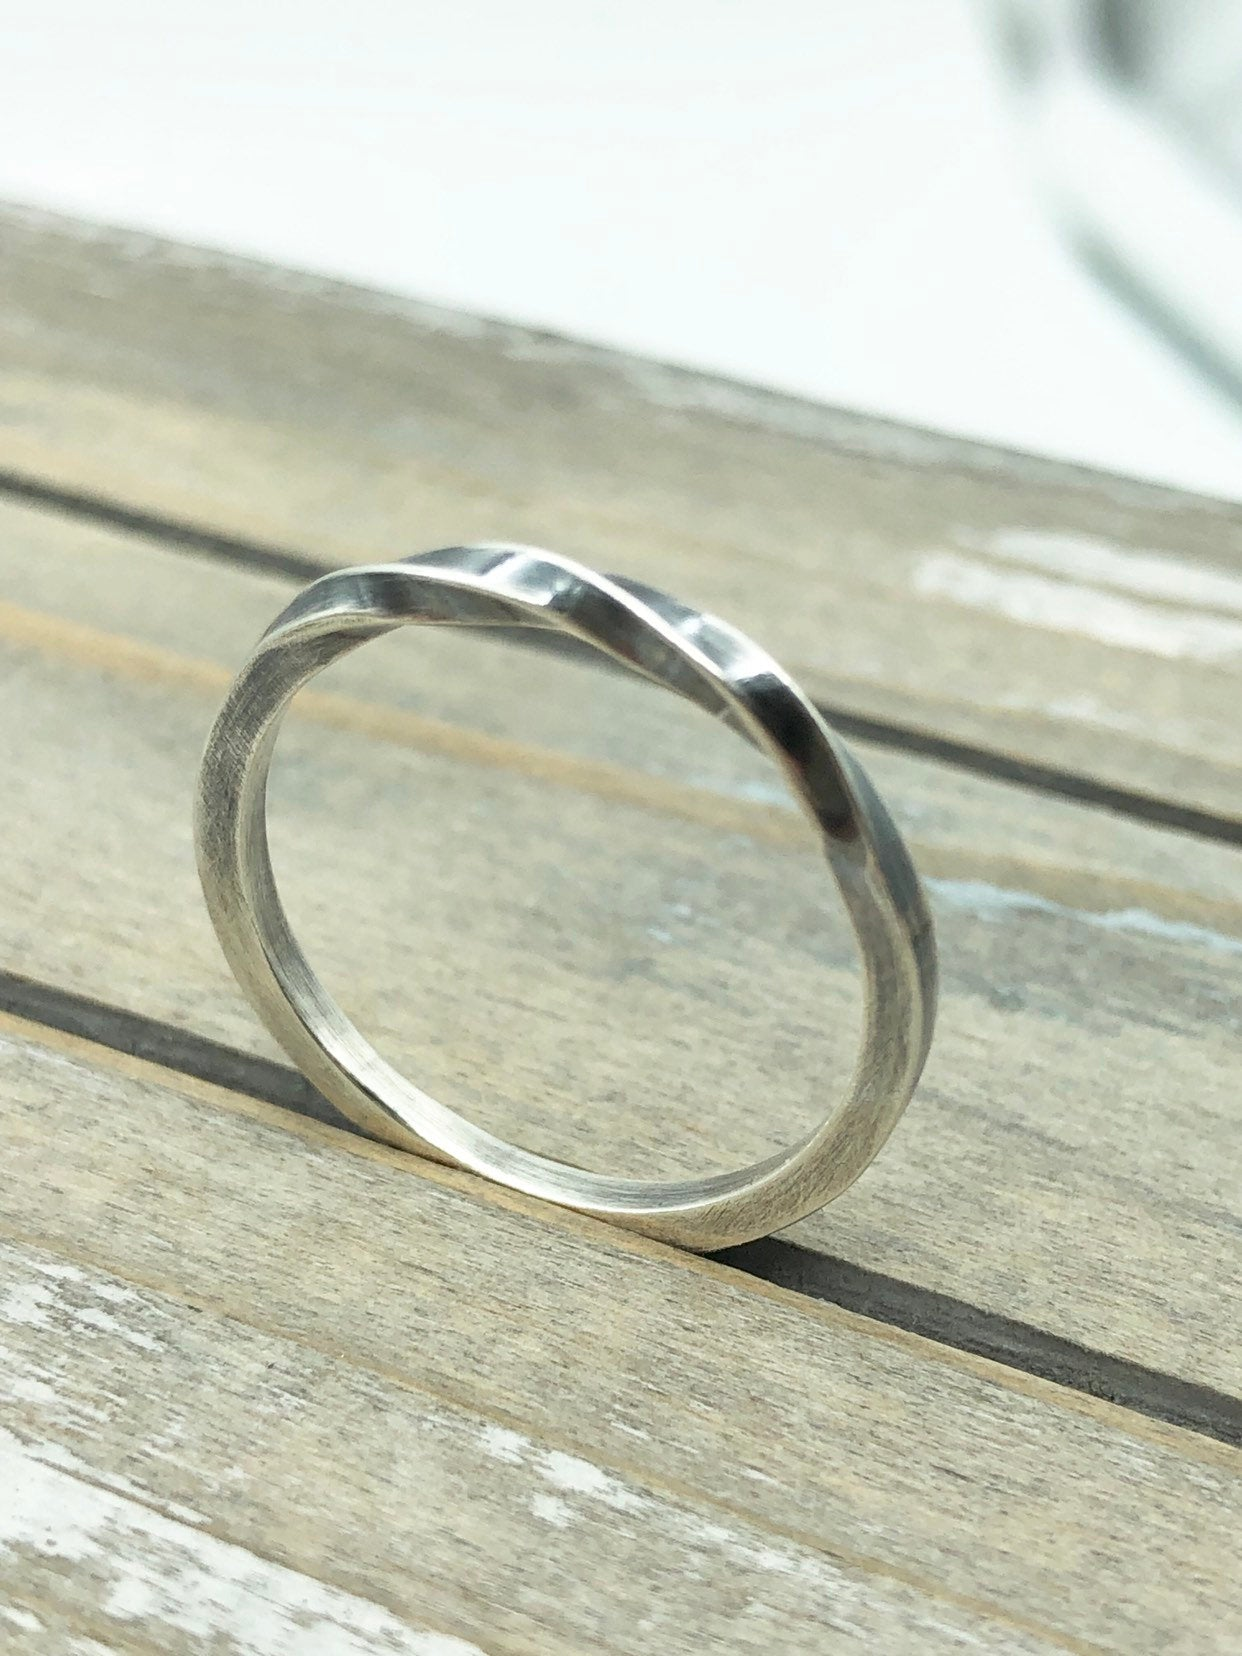 Twisted Ring - Sterling Silver Ring  - Simple Band - Gift For Her - Jewelry Sale - Stacking ring - ring